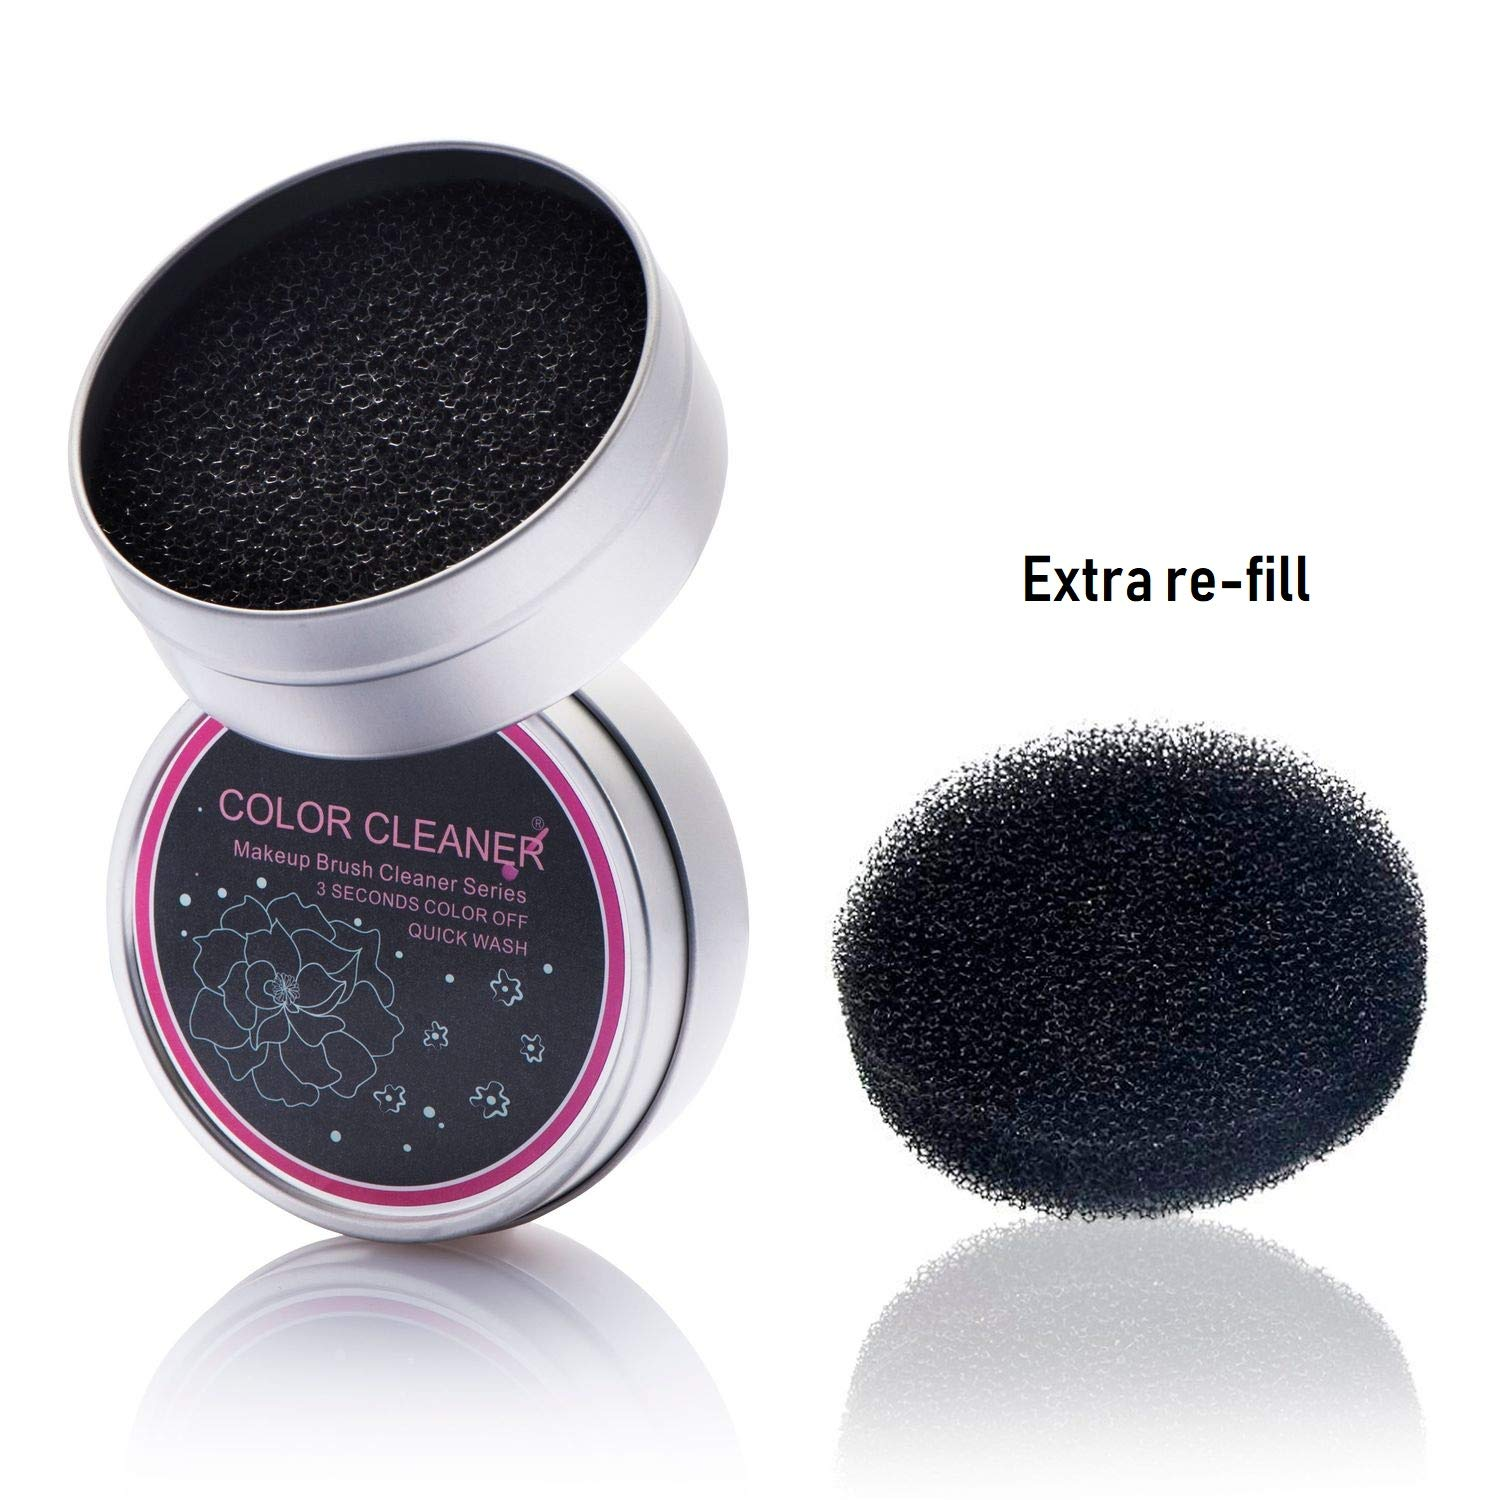 Zodaca Brush Color Removal Sponge, Clean Makeup Brushes Easily/Swiftly Switch To Next Color/Remove Shadow Color from Makeup Brushes